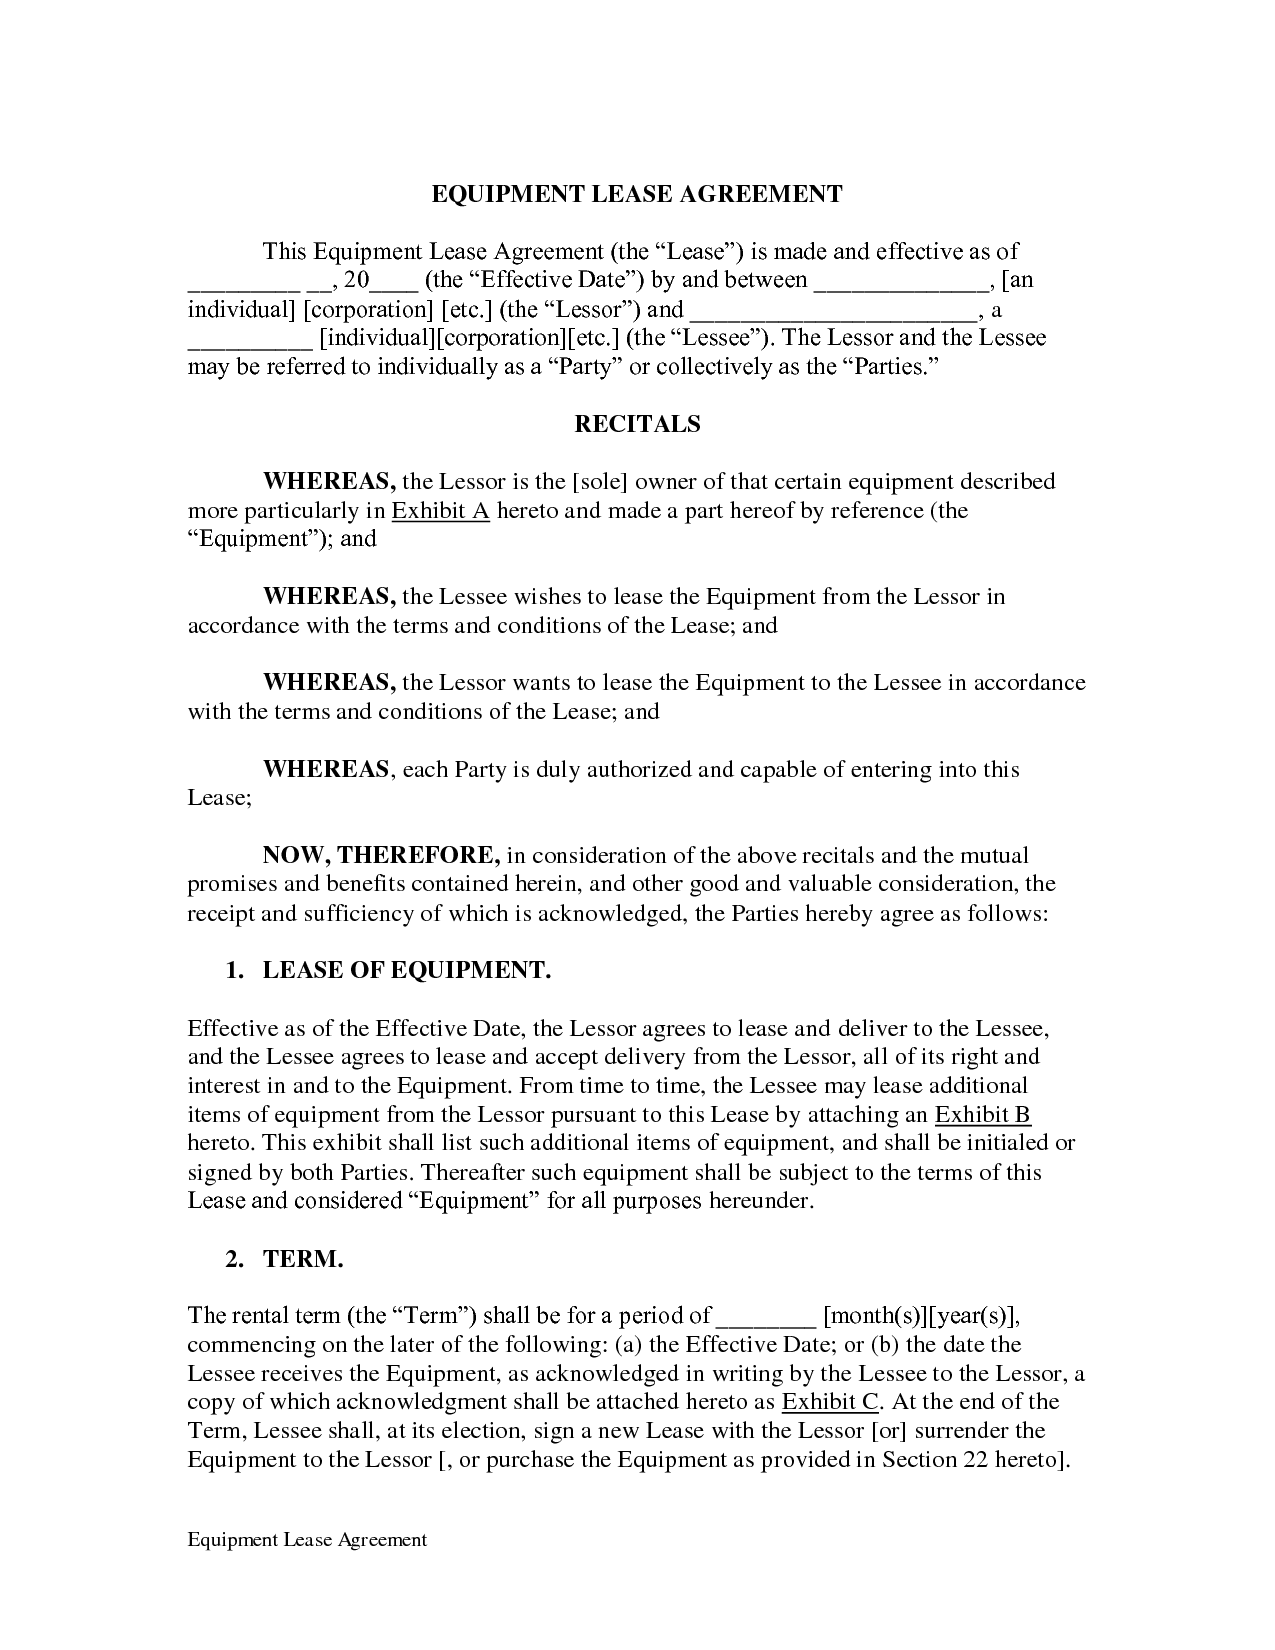 Equipment Lease Agreement DOC by LegalZoom equipment leasing – Equipment Lease Form Template